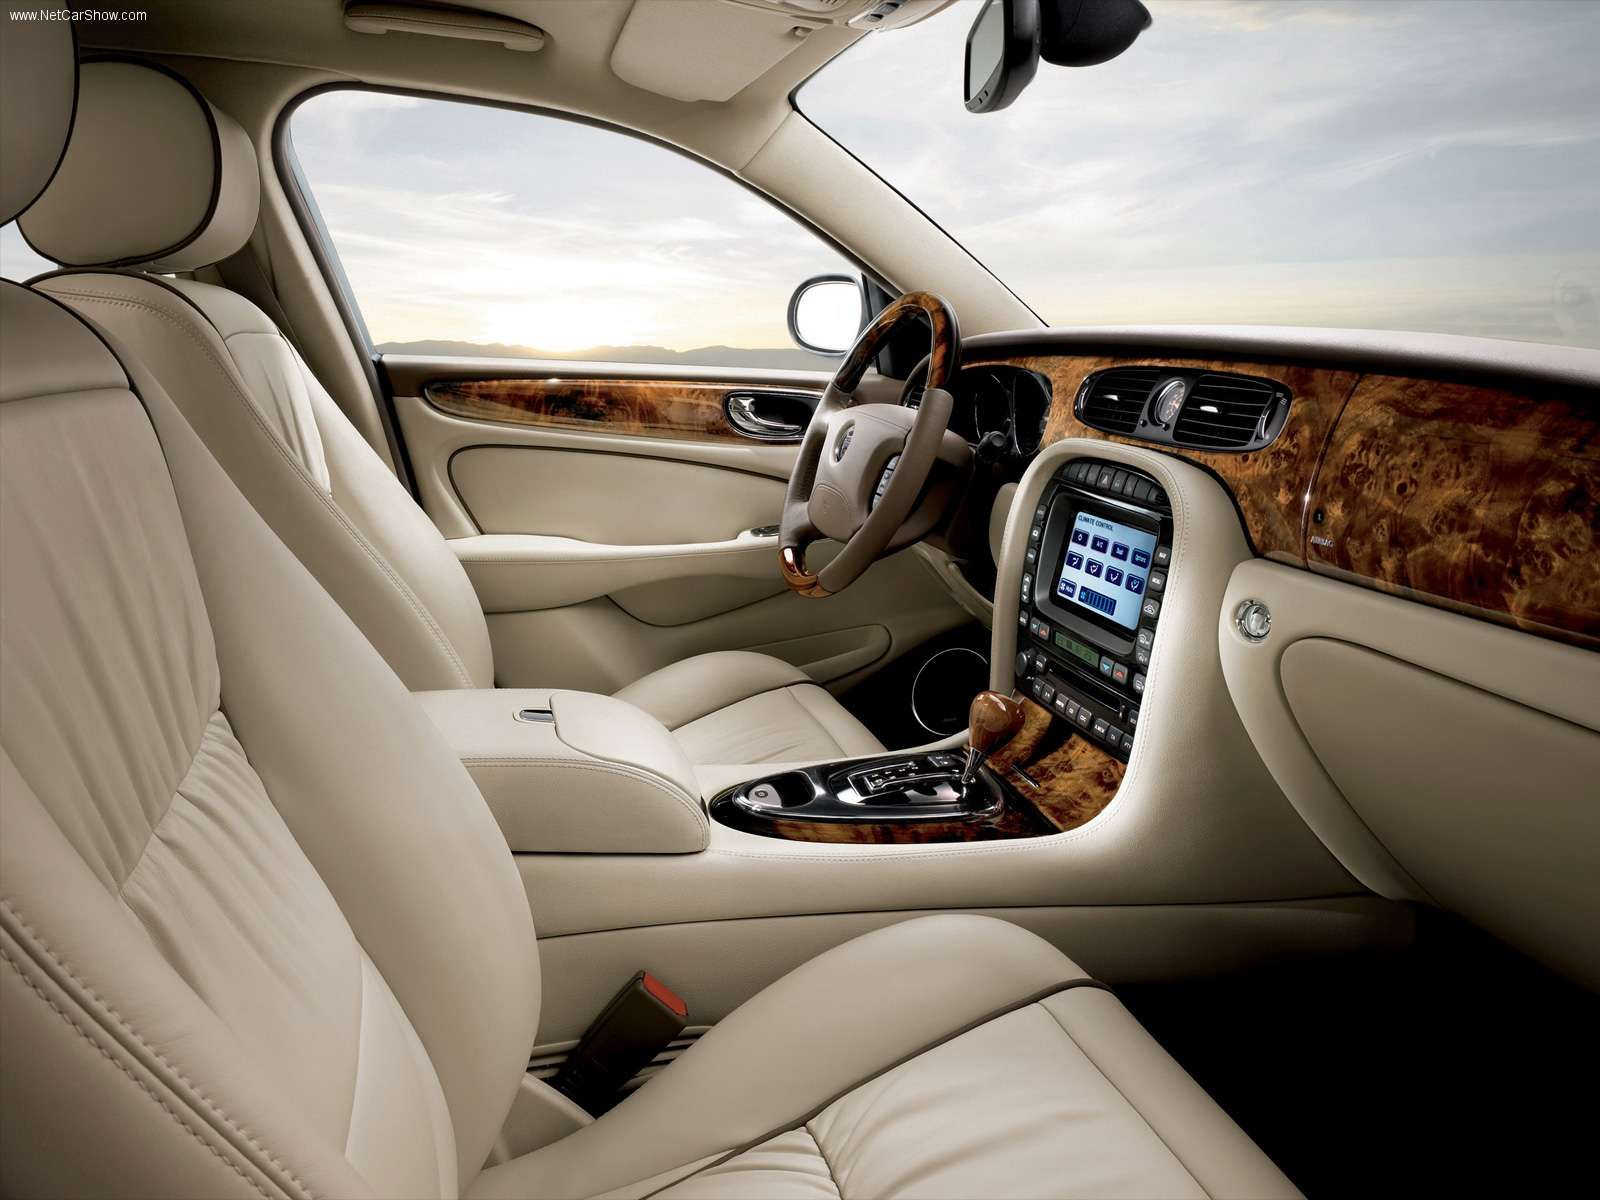 Classy Interior Of The Jaguar Xj Sweet Rides Pinterest Jaguar Xj Cars And Jaguar Daimler